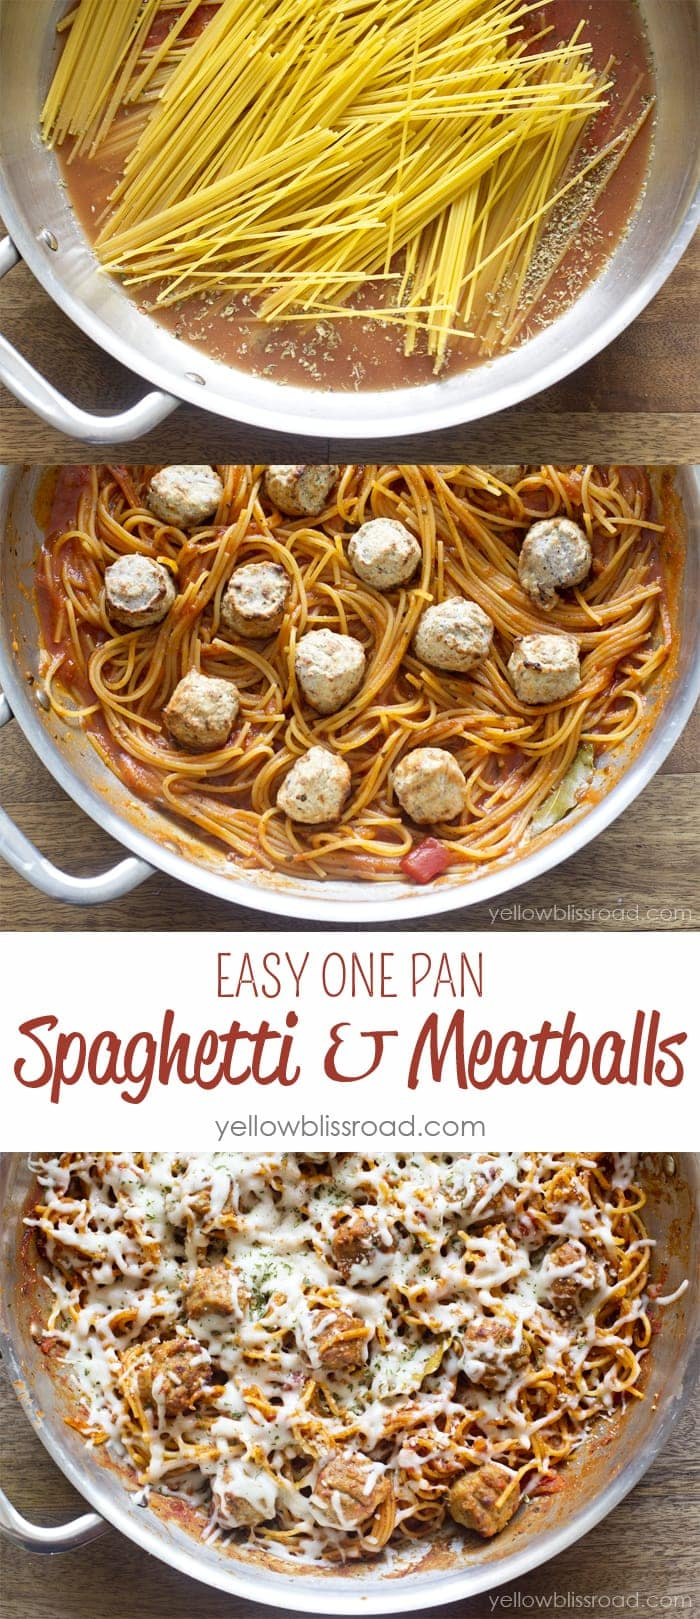 Easy One Pan Spaghetti and Meatballs - A quick and easy one pan version of this family favorite!